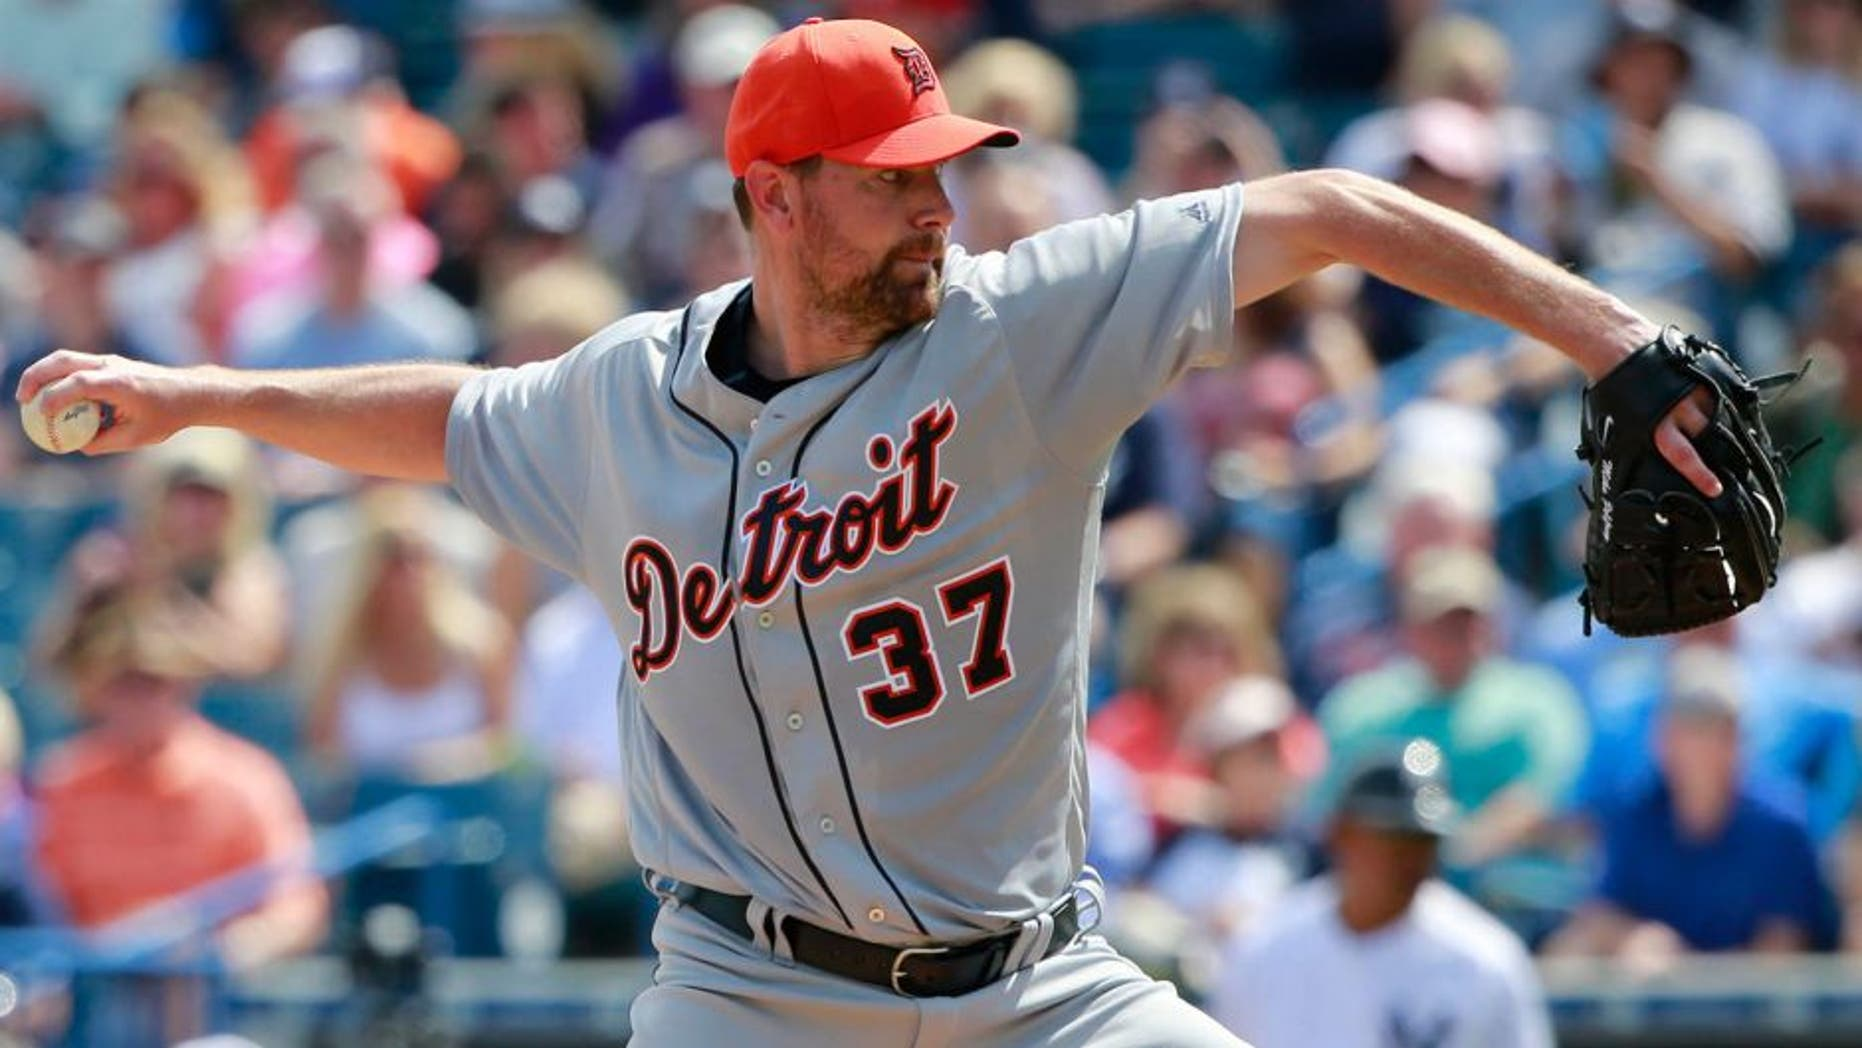 Mar 2, 2016; Tampa, FL, USA; Detroit Tigers starting pitcher Mike Pelfrey (37) throws a pitch during the first inning against the New York Yankees at George M. Steinbrenner Field. Mandatory Credit: Kim Klement-USA TODAY Sports